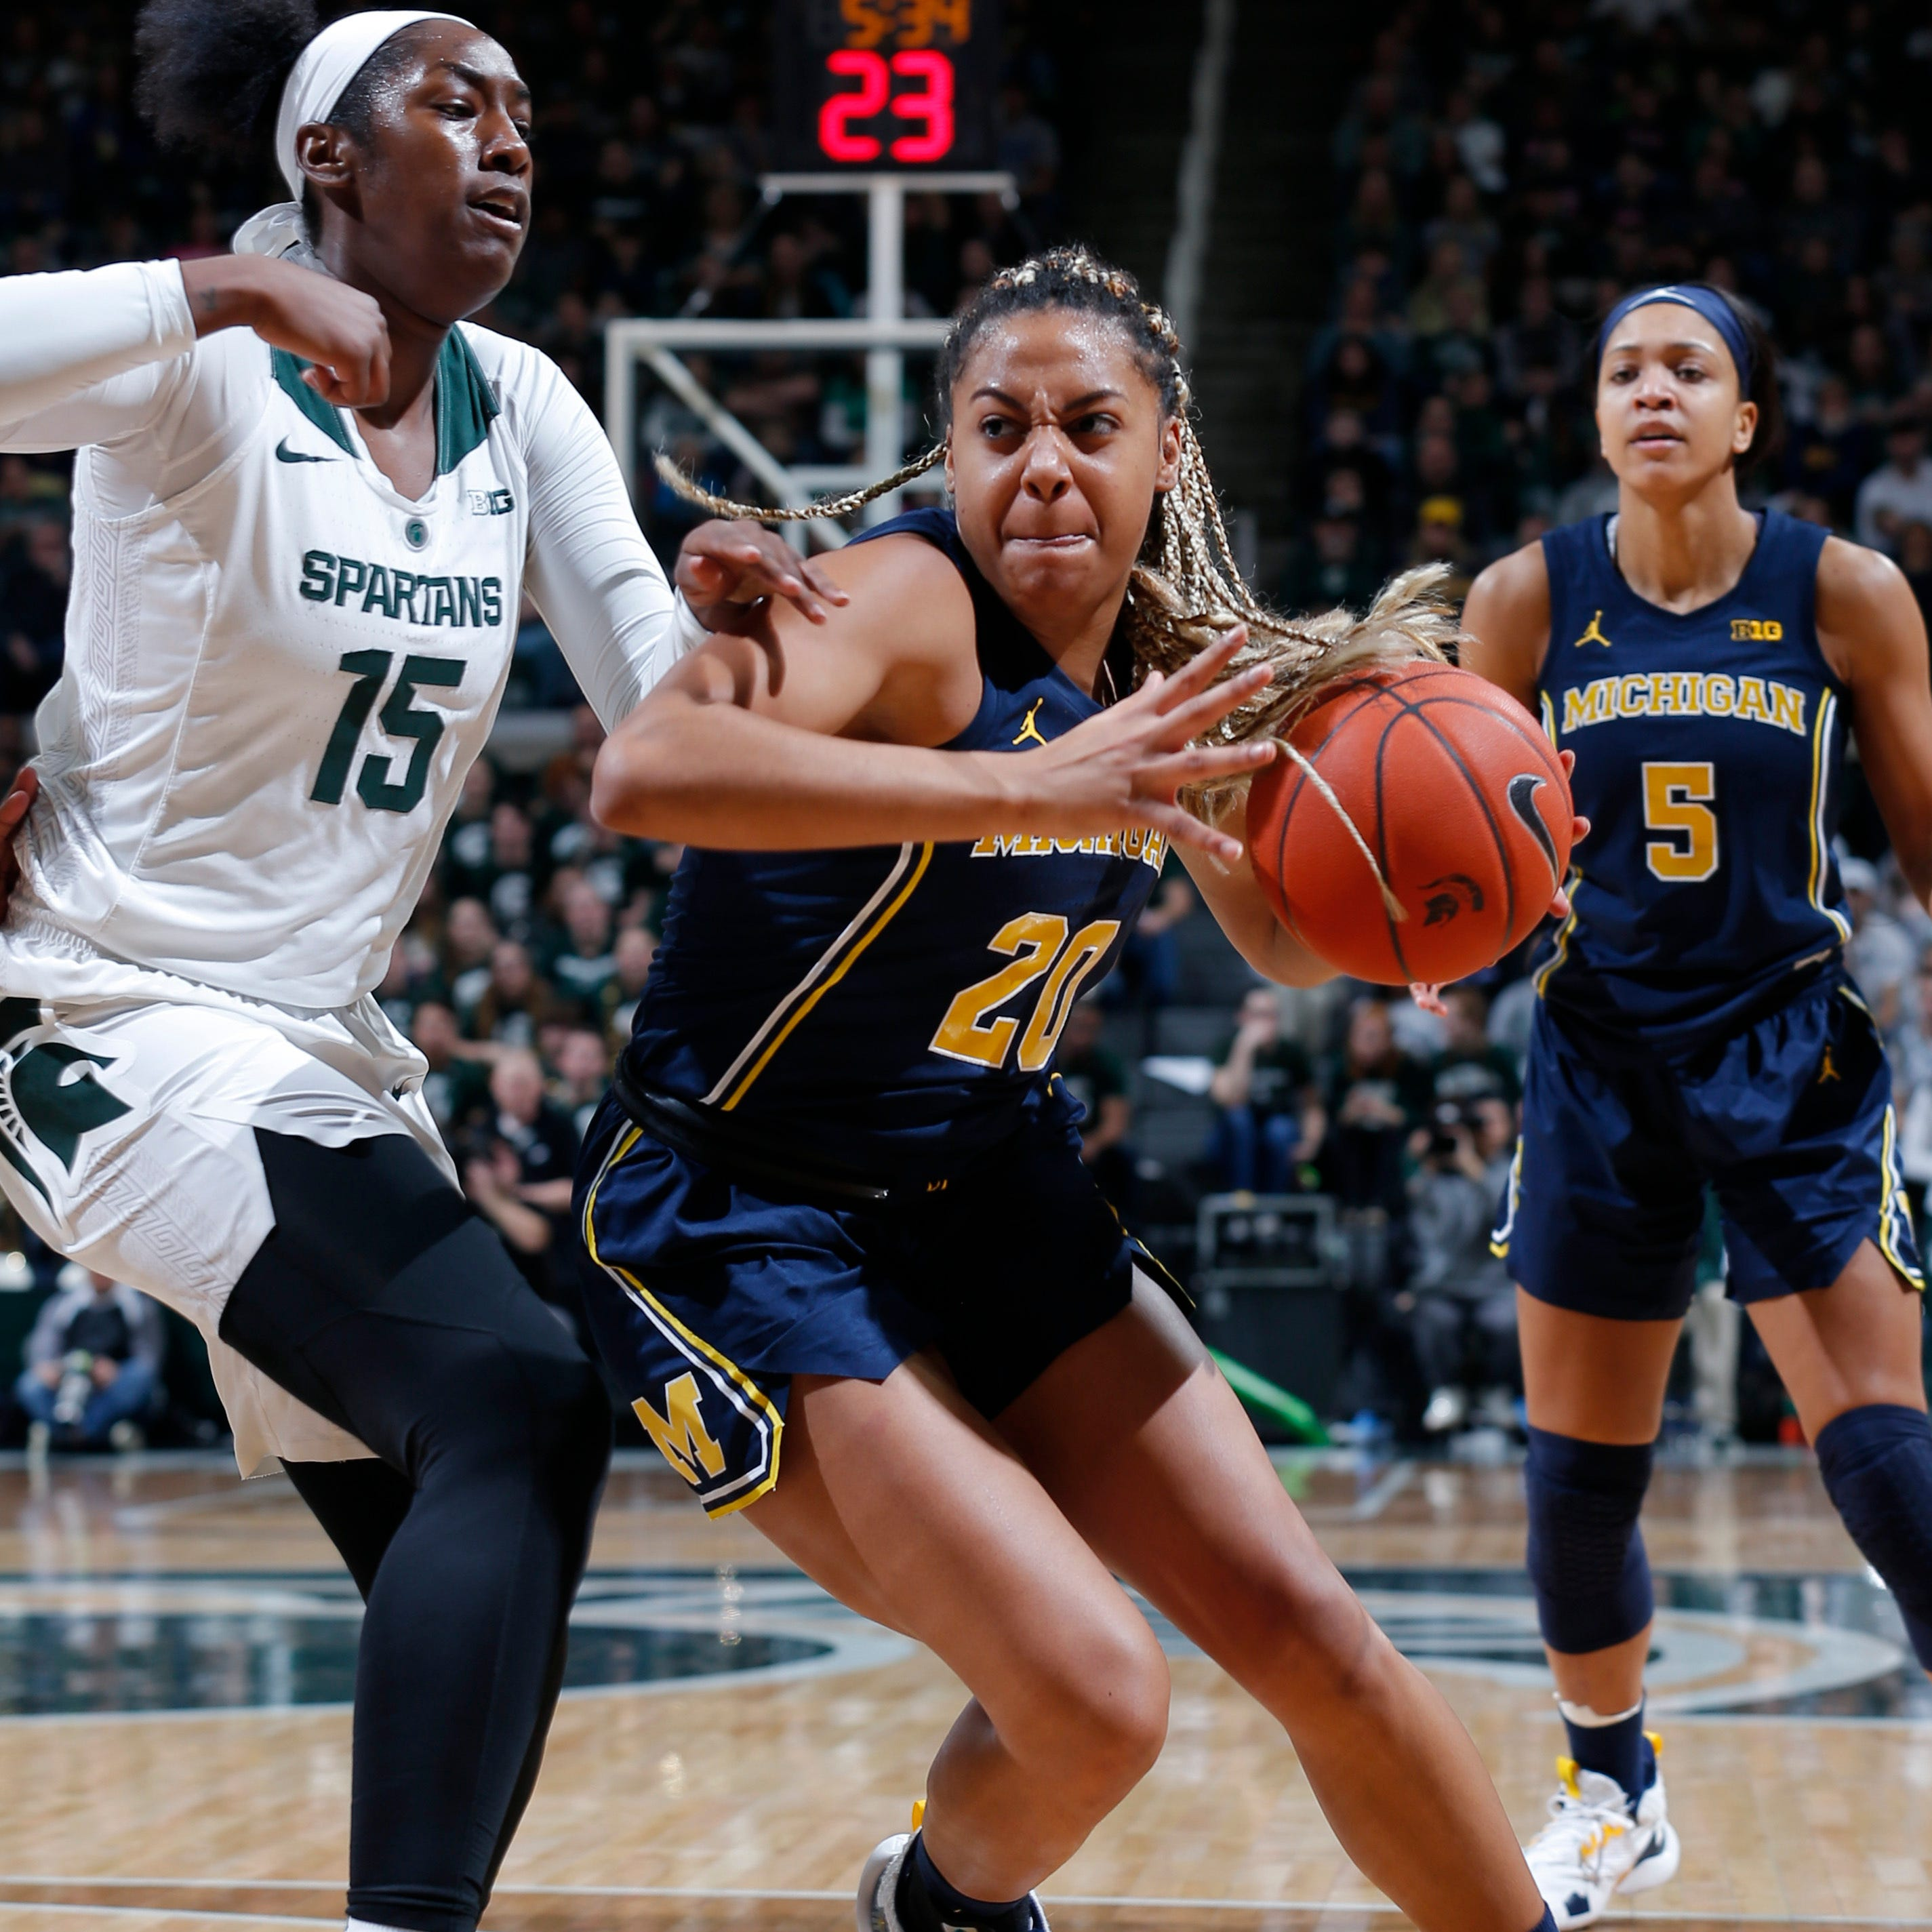 ESPN leaks women's bracket; Central Michigan plays Michigan State, Michigan also in